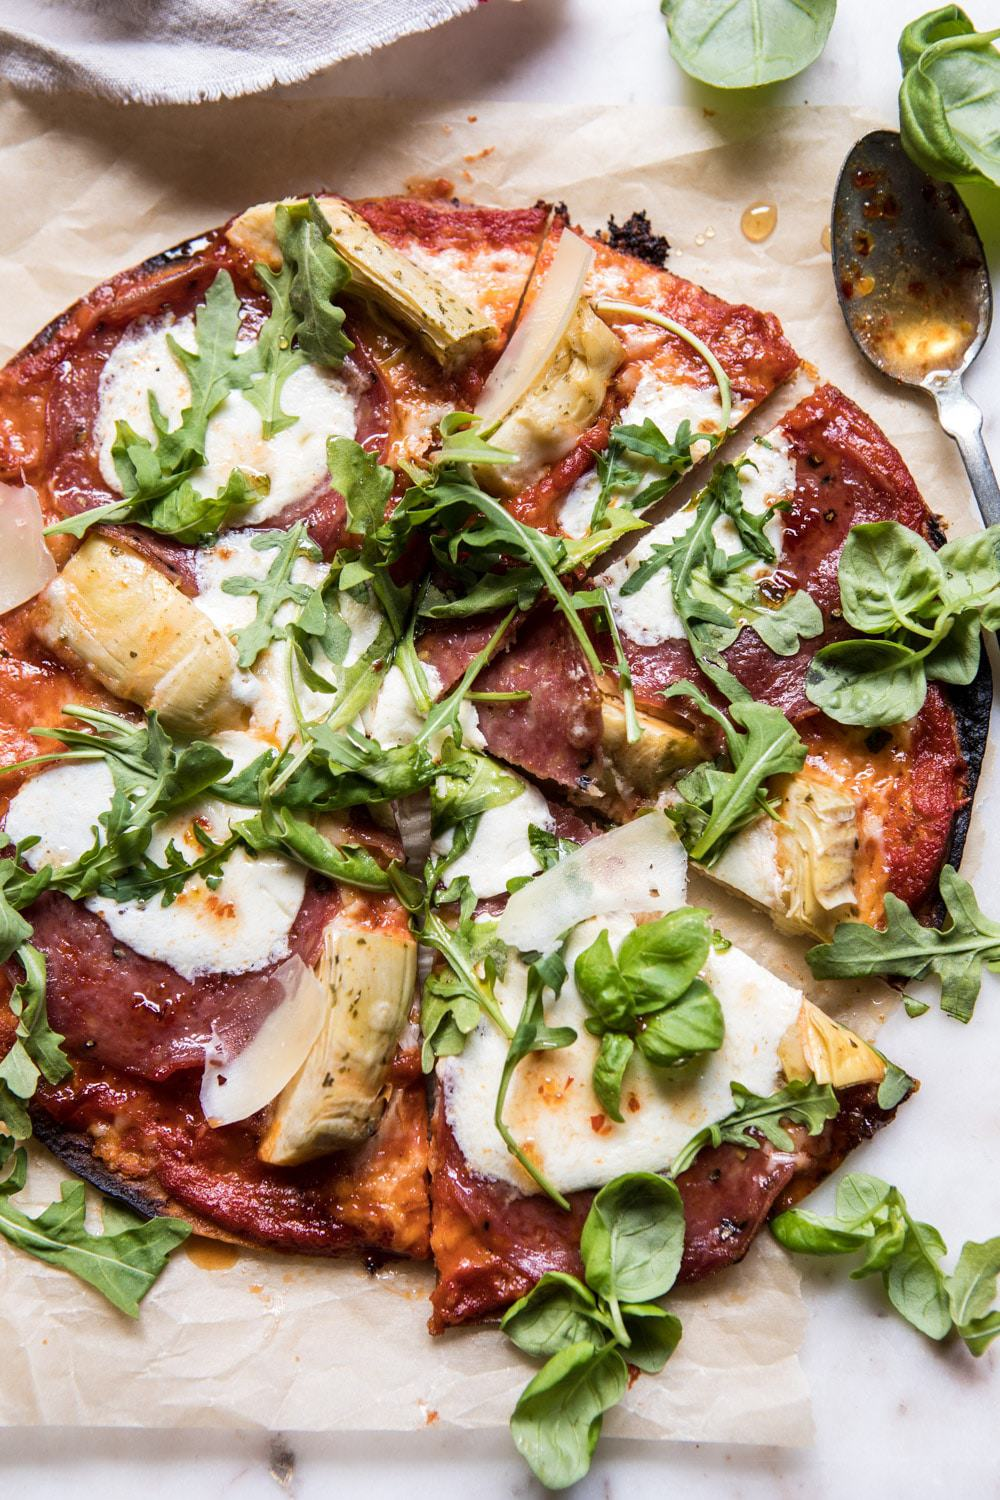 15 Minute Thin Crust Pizza with Arugula and Hot Honey | halfbakedharvest.com #pizza #quick #easy #recipe